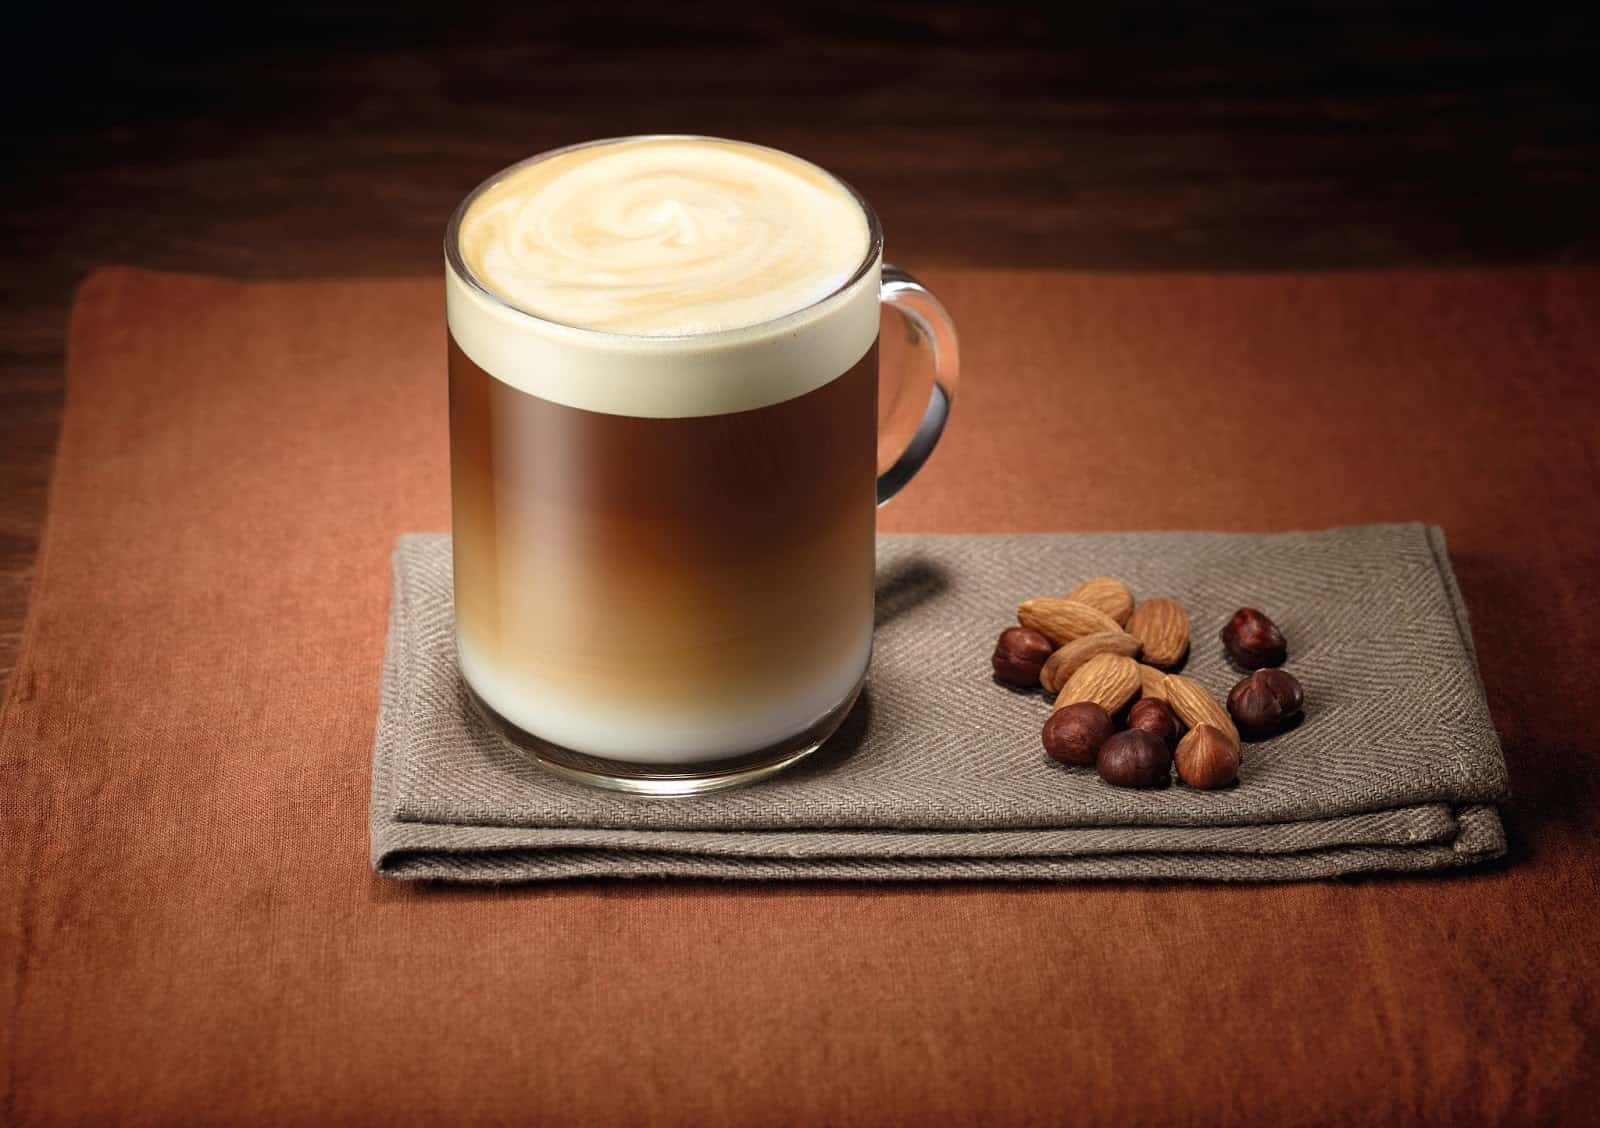 Caramel chocolate hazelnut latte